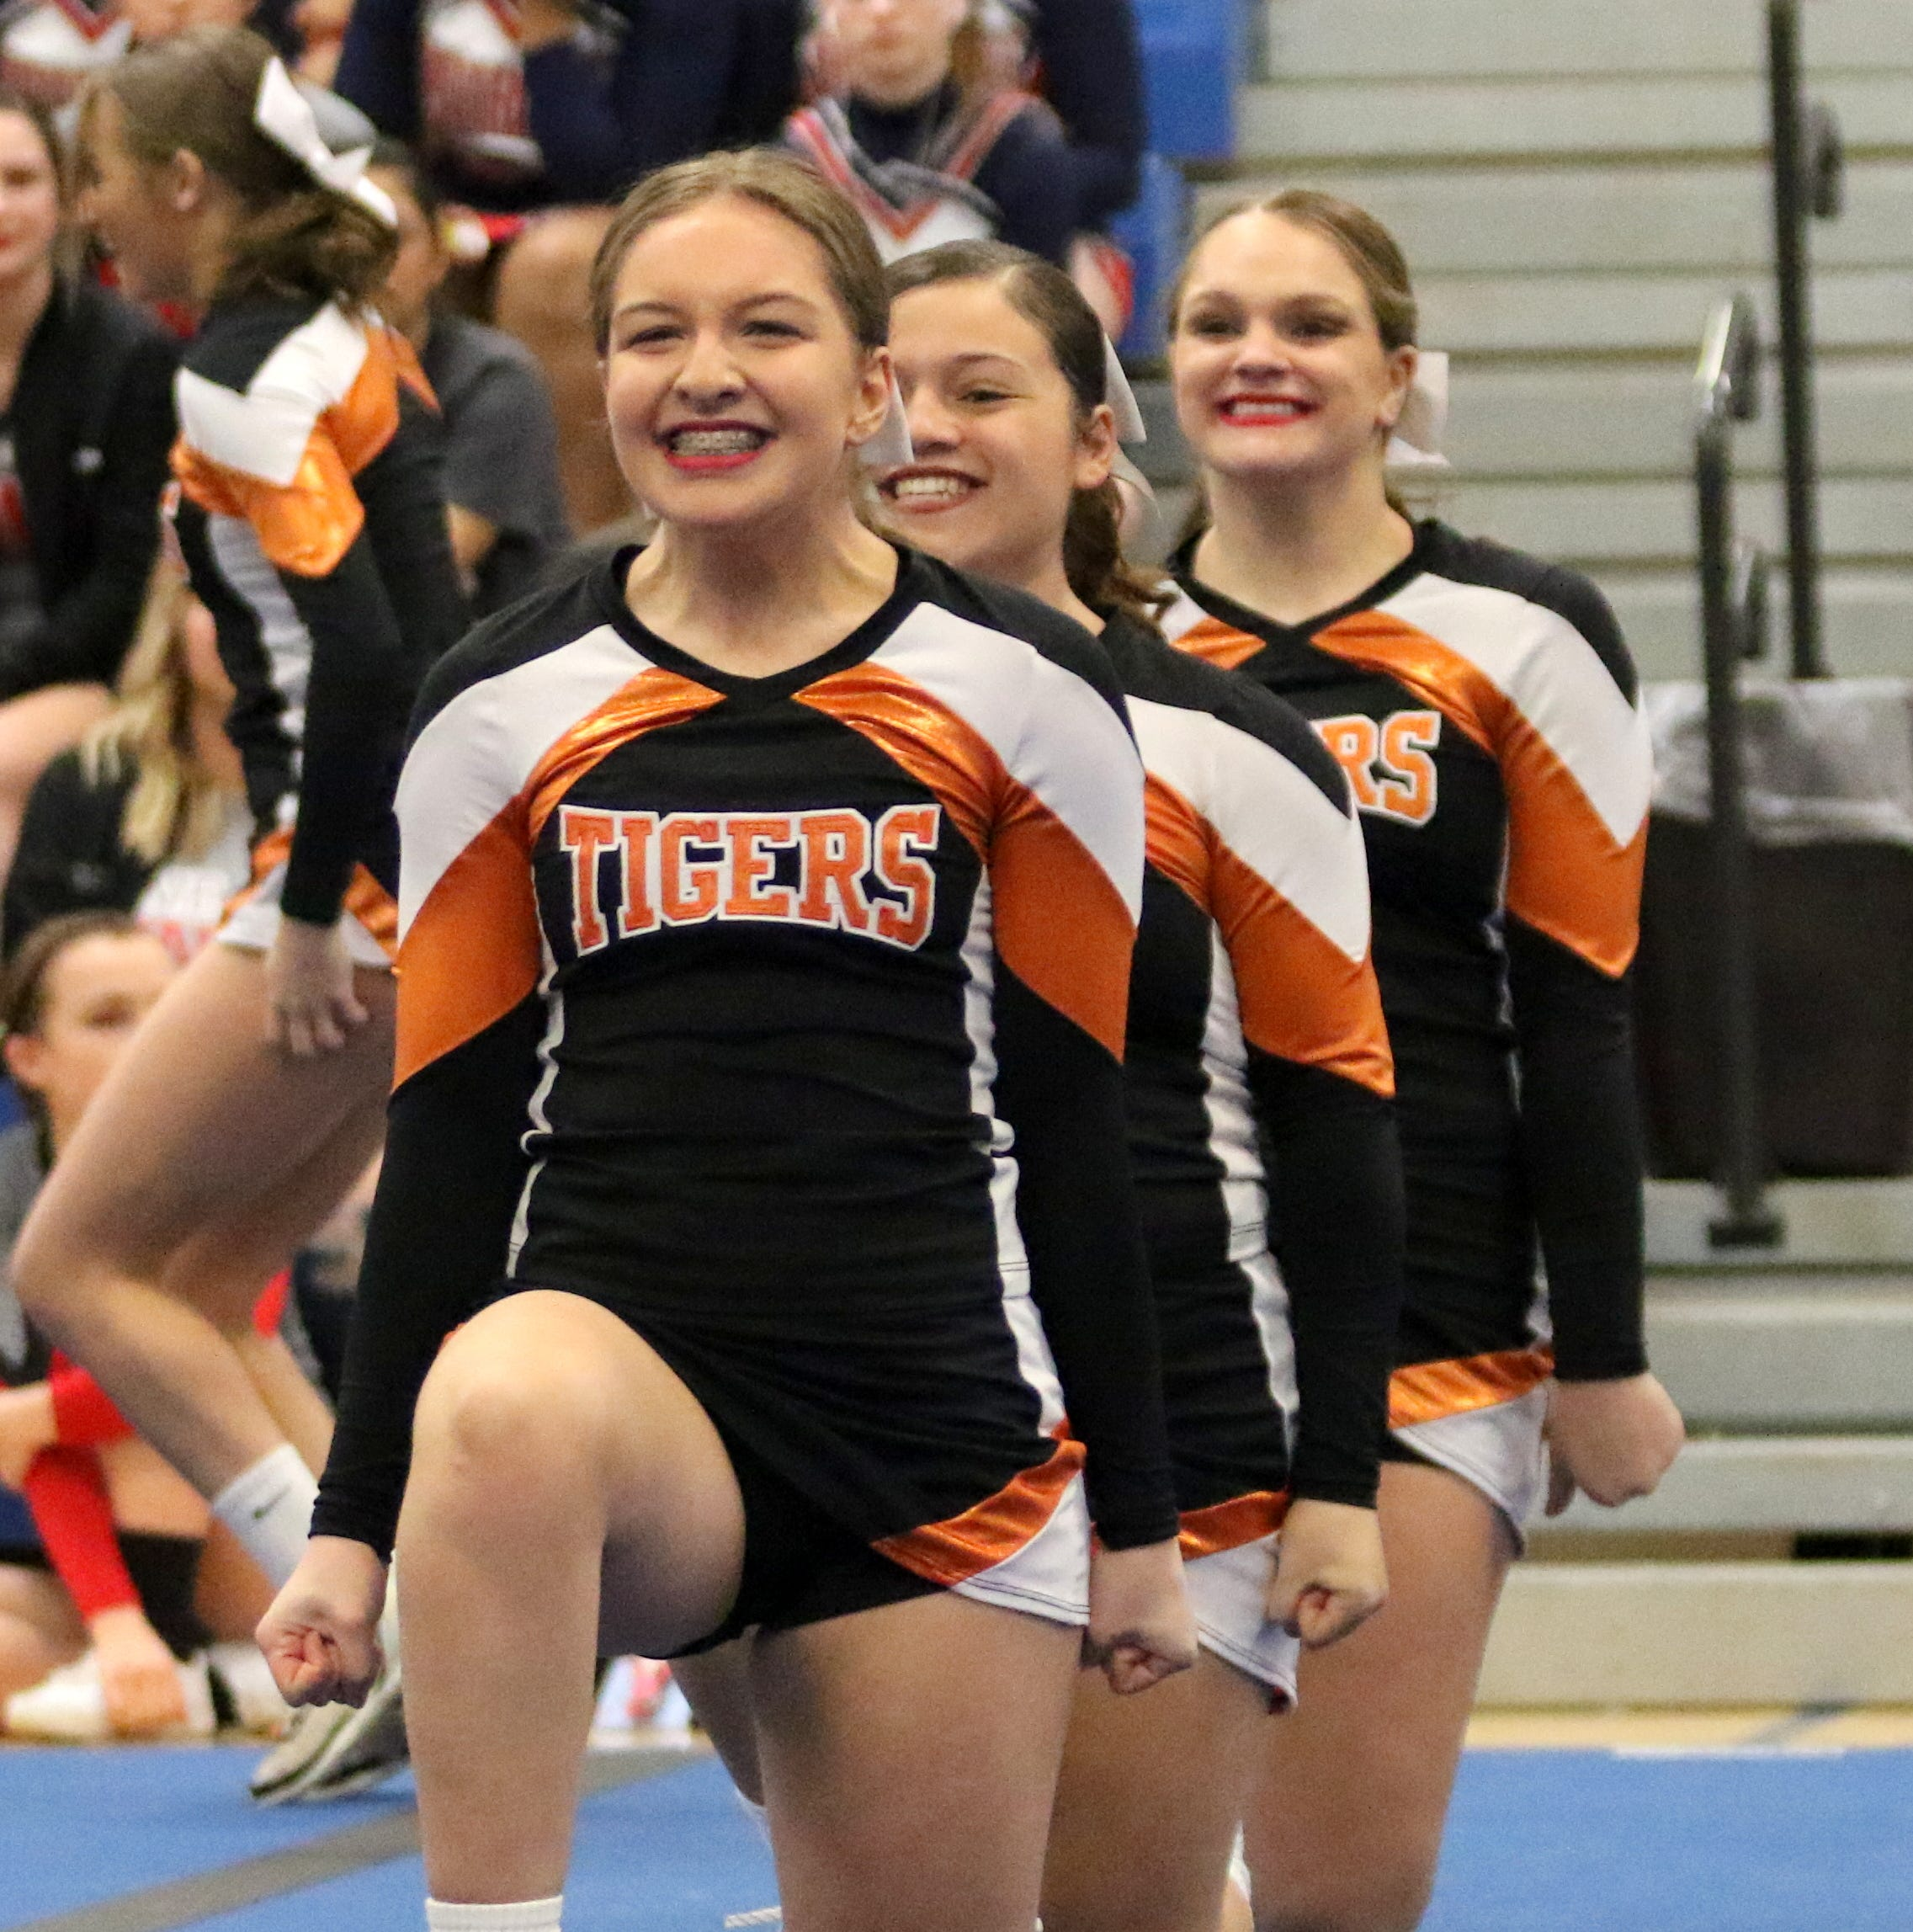 STAC Cheerleading: Union-Endicott, Chenango Forks, Johnson City capture titles